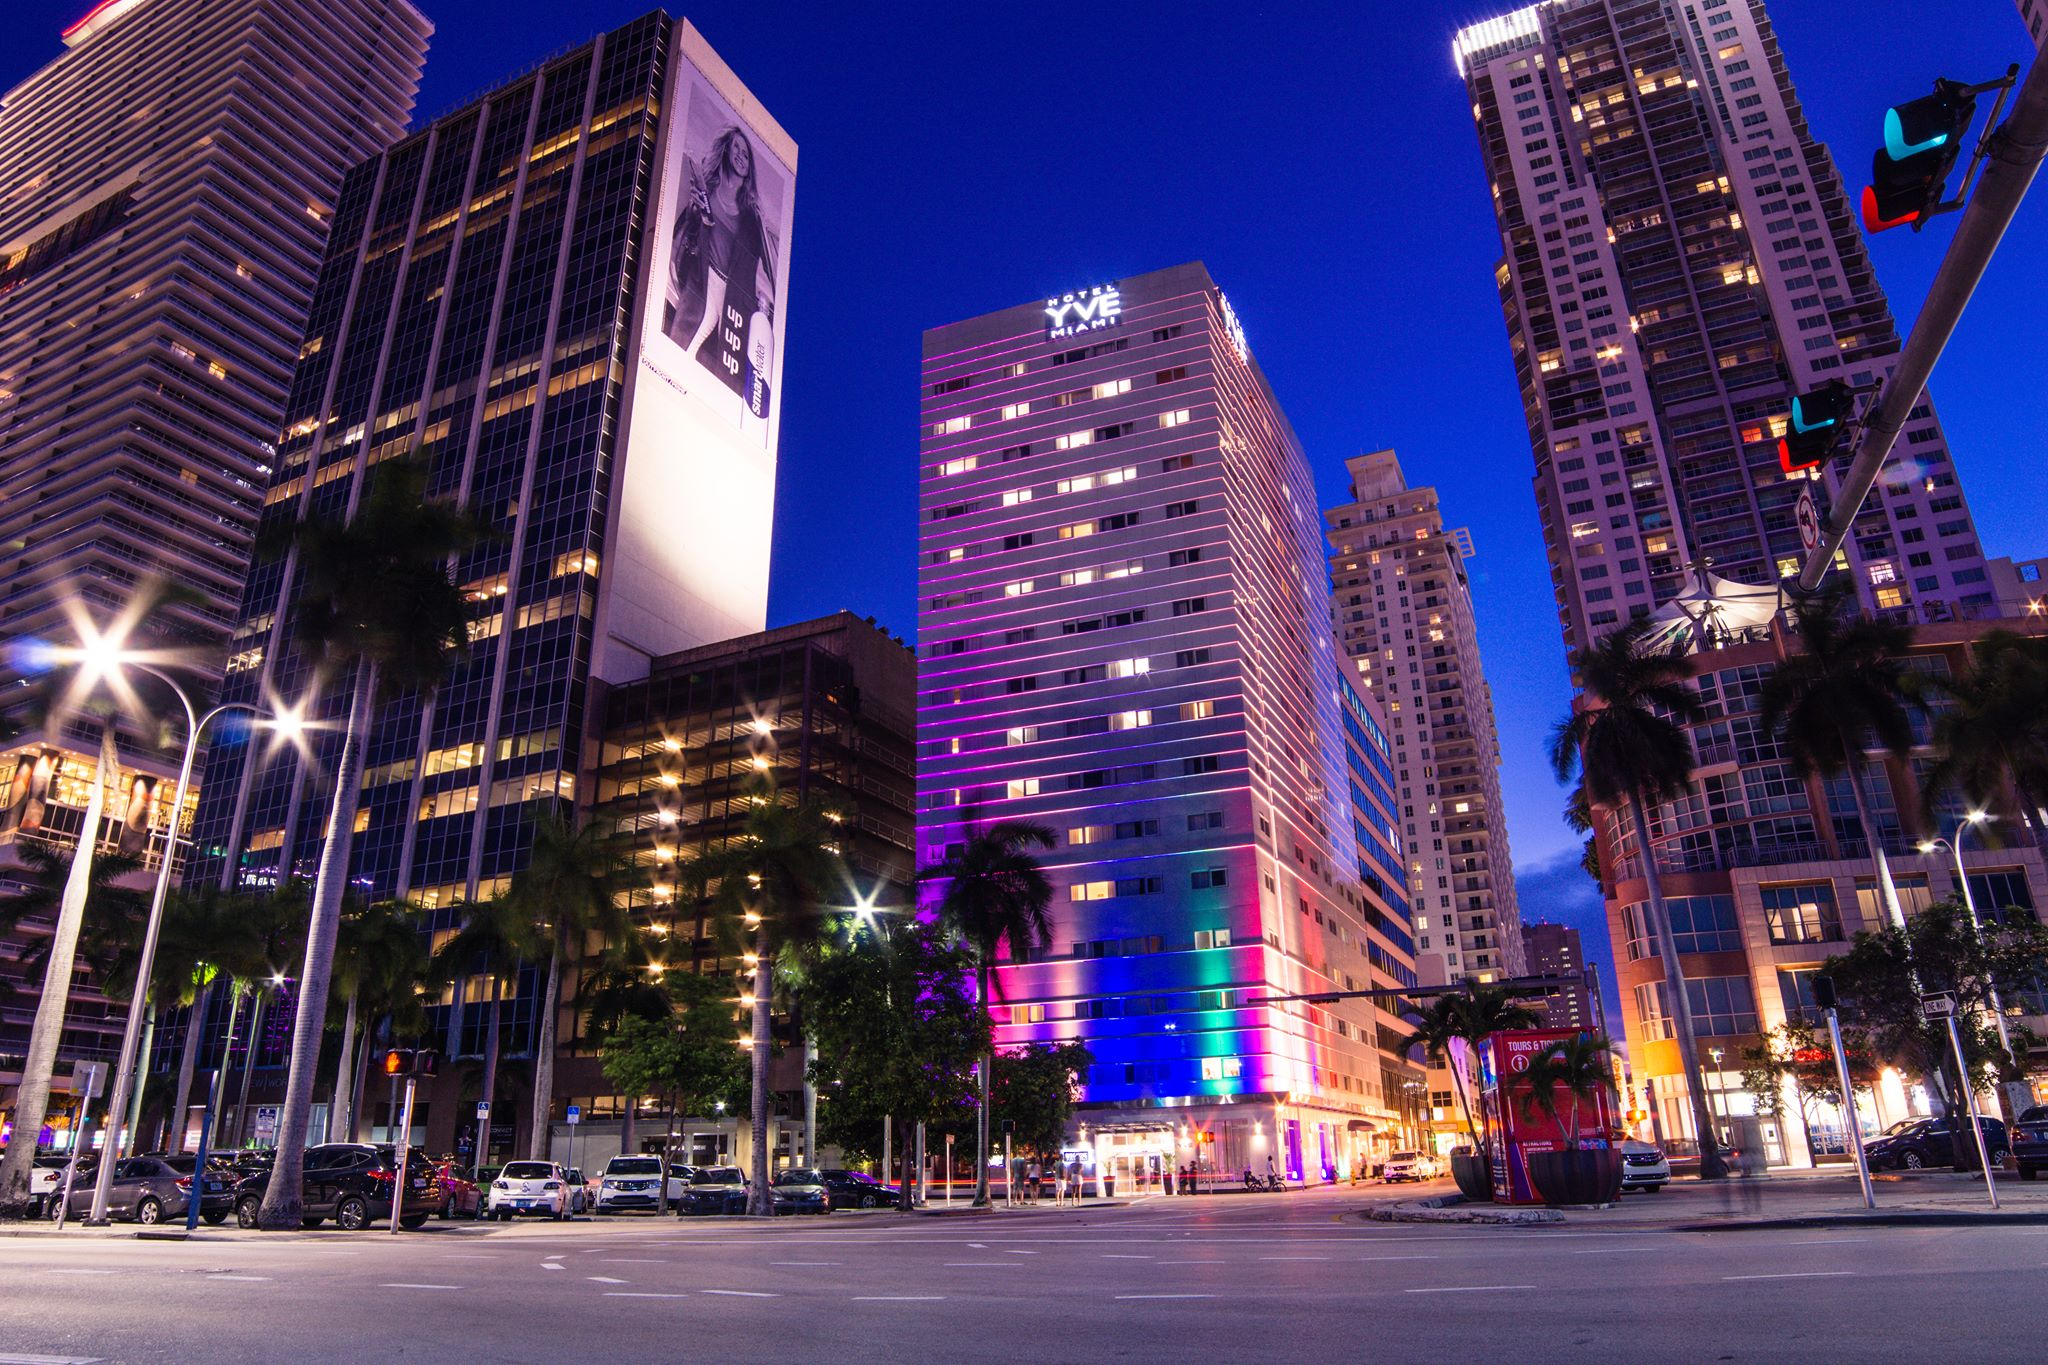 YVE Hotel Miami expands its culinary team | Hotel Management